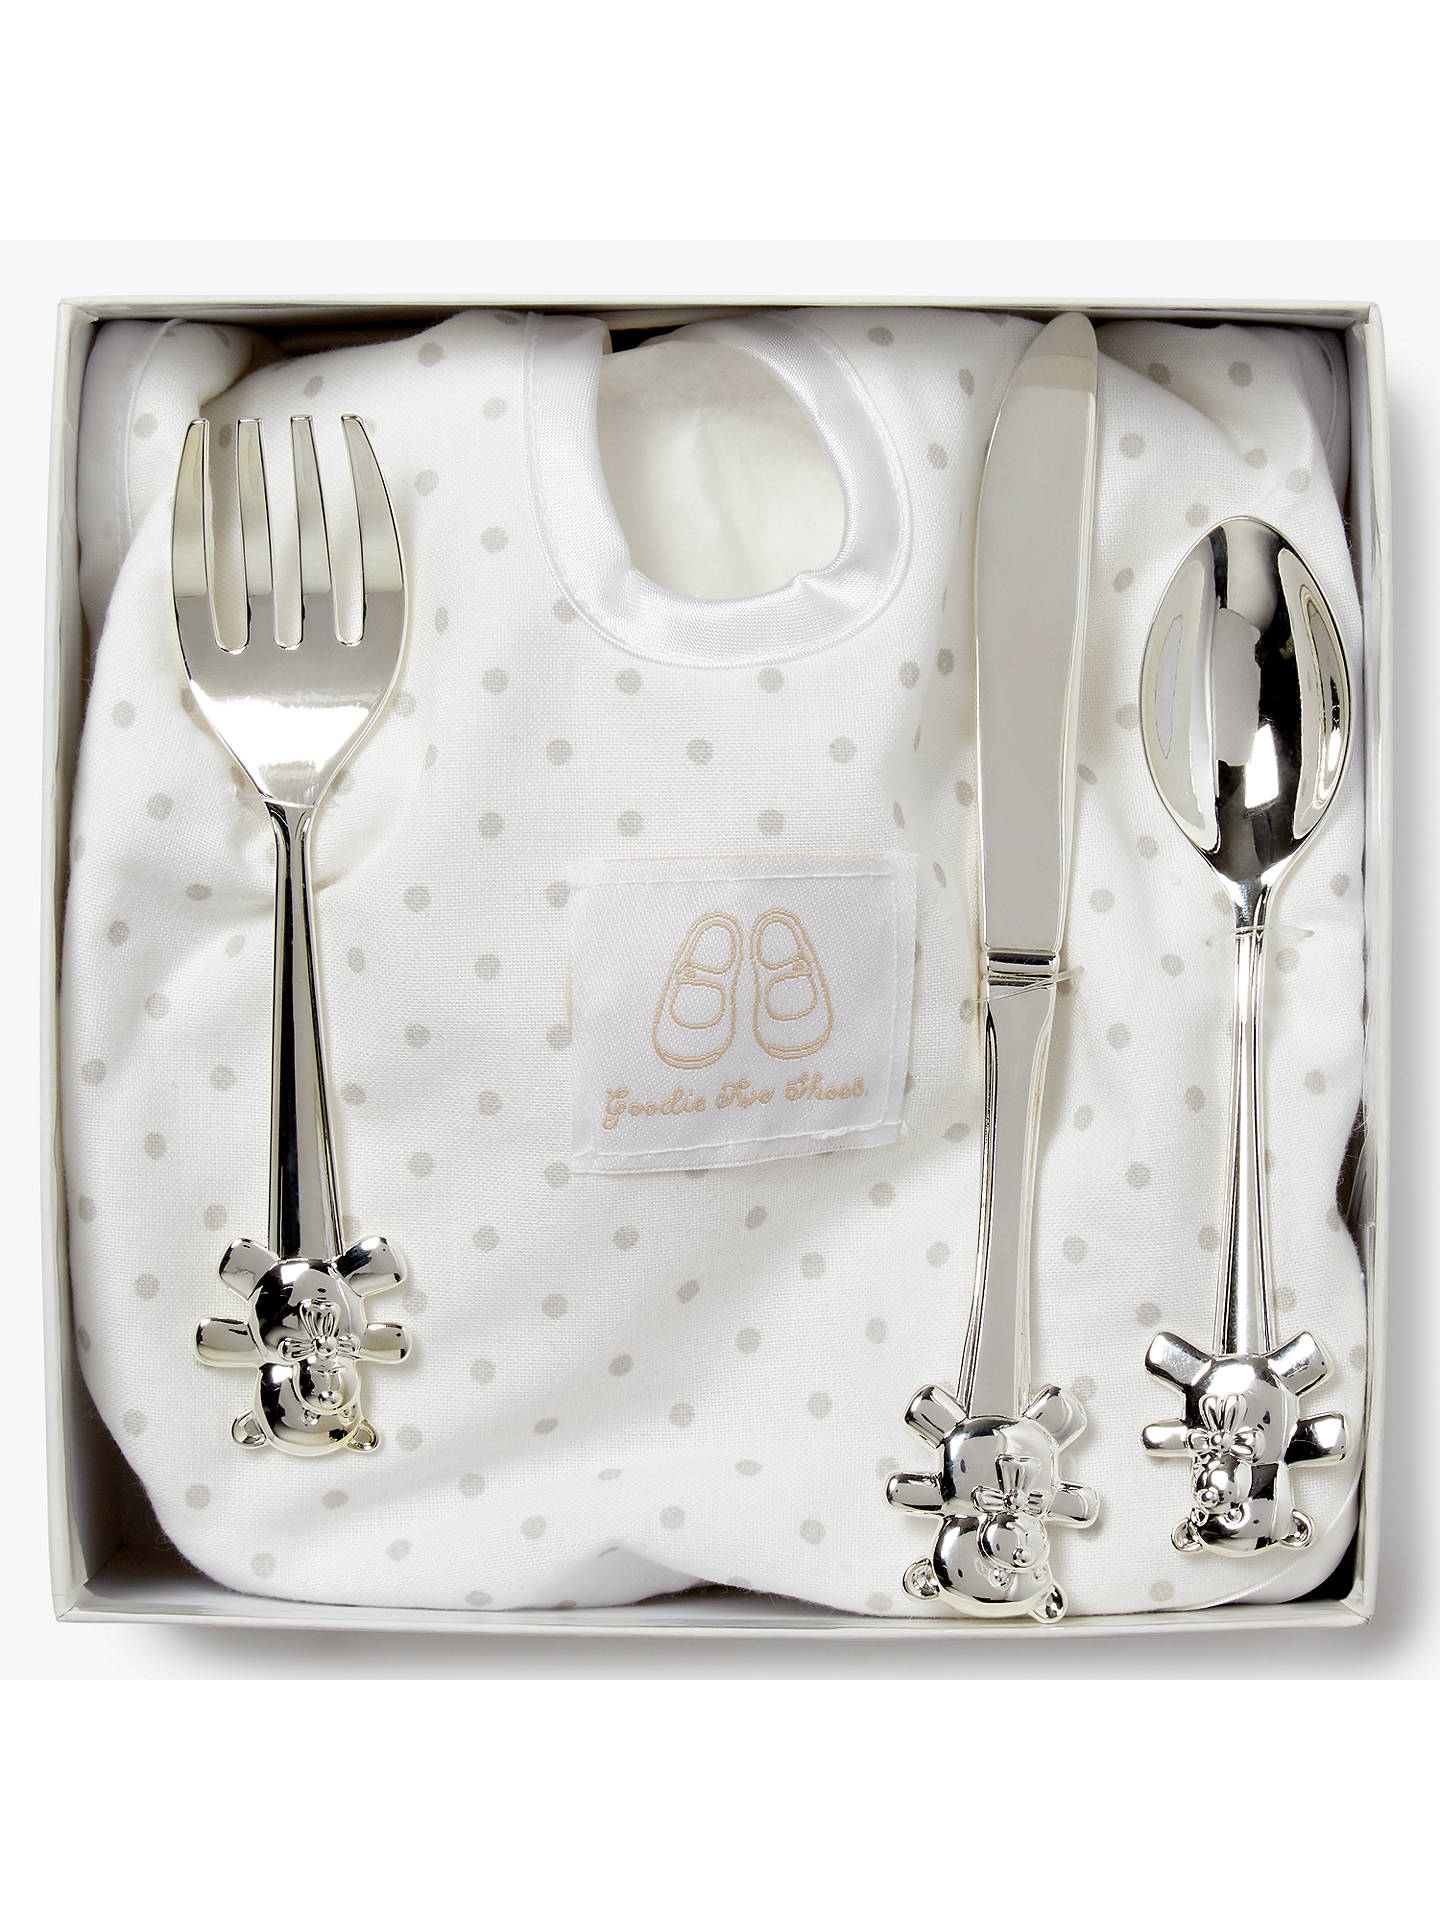 BuyEnglish Trousseau Silver Plated Cutlery Set with Bib Online at johnlewis.com